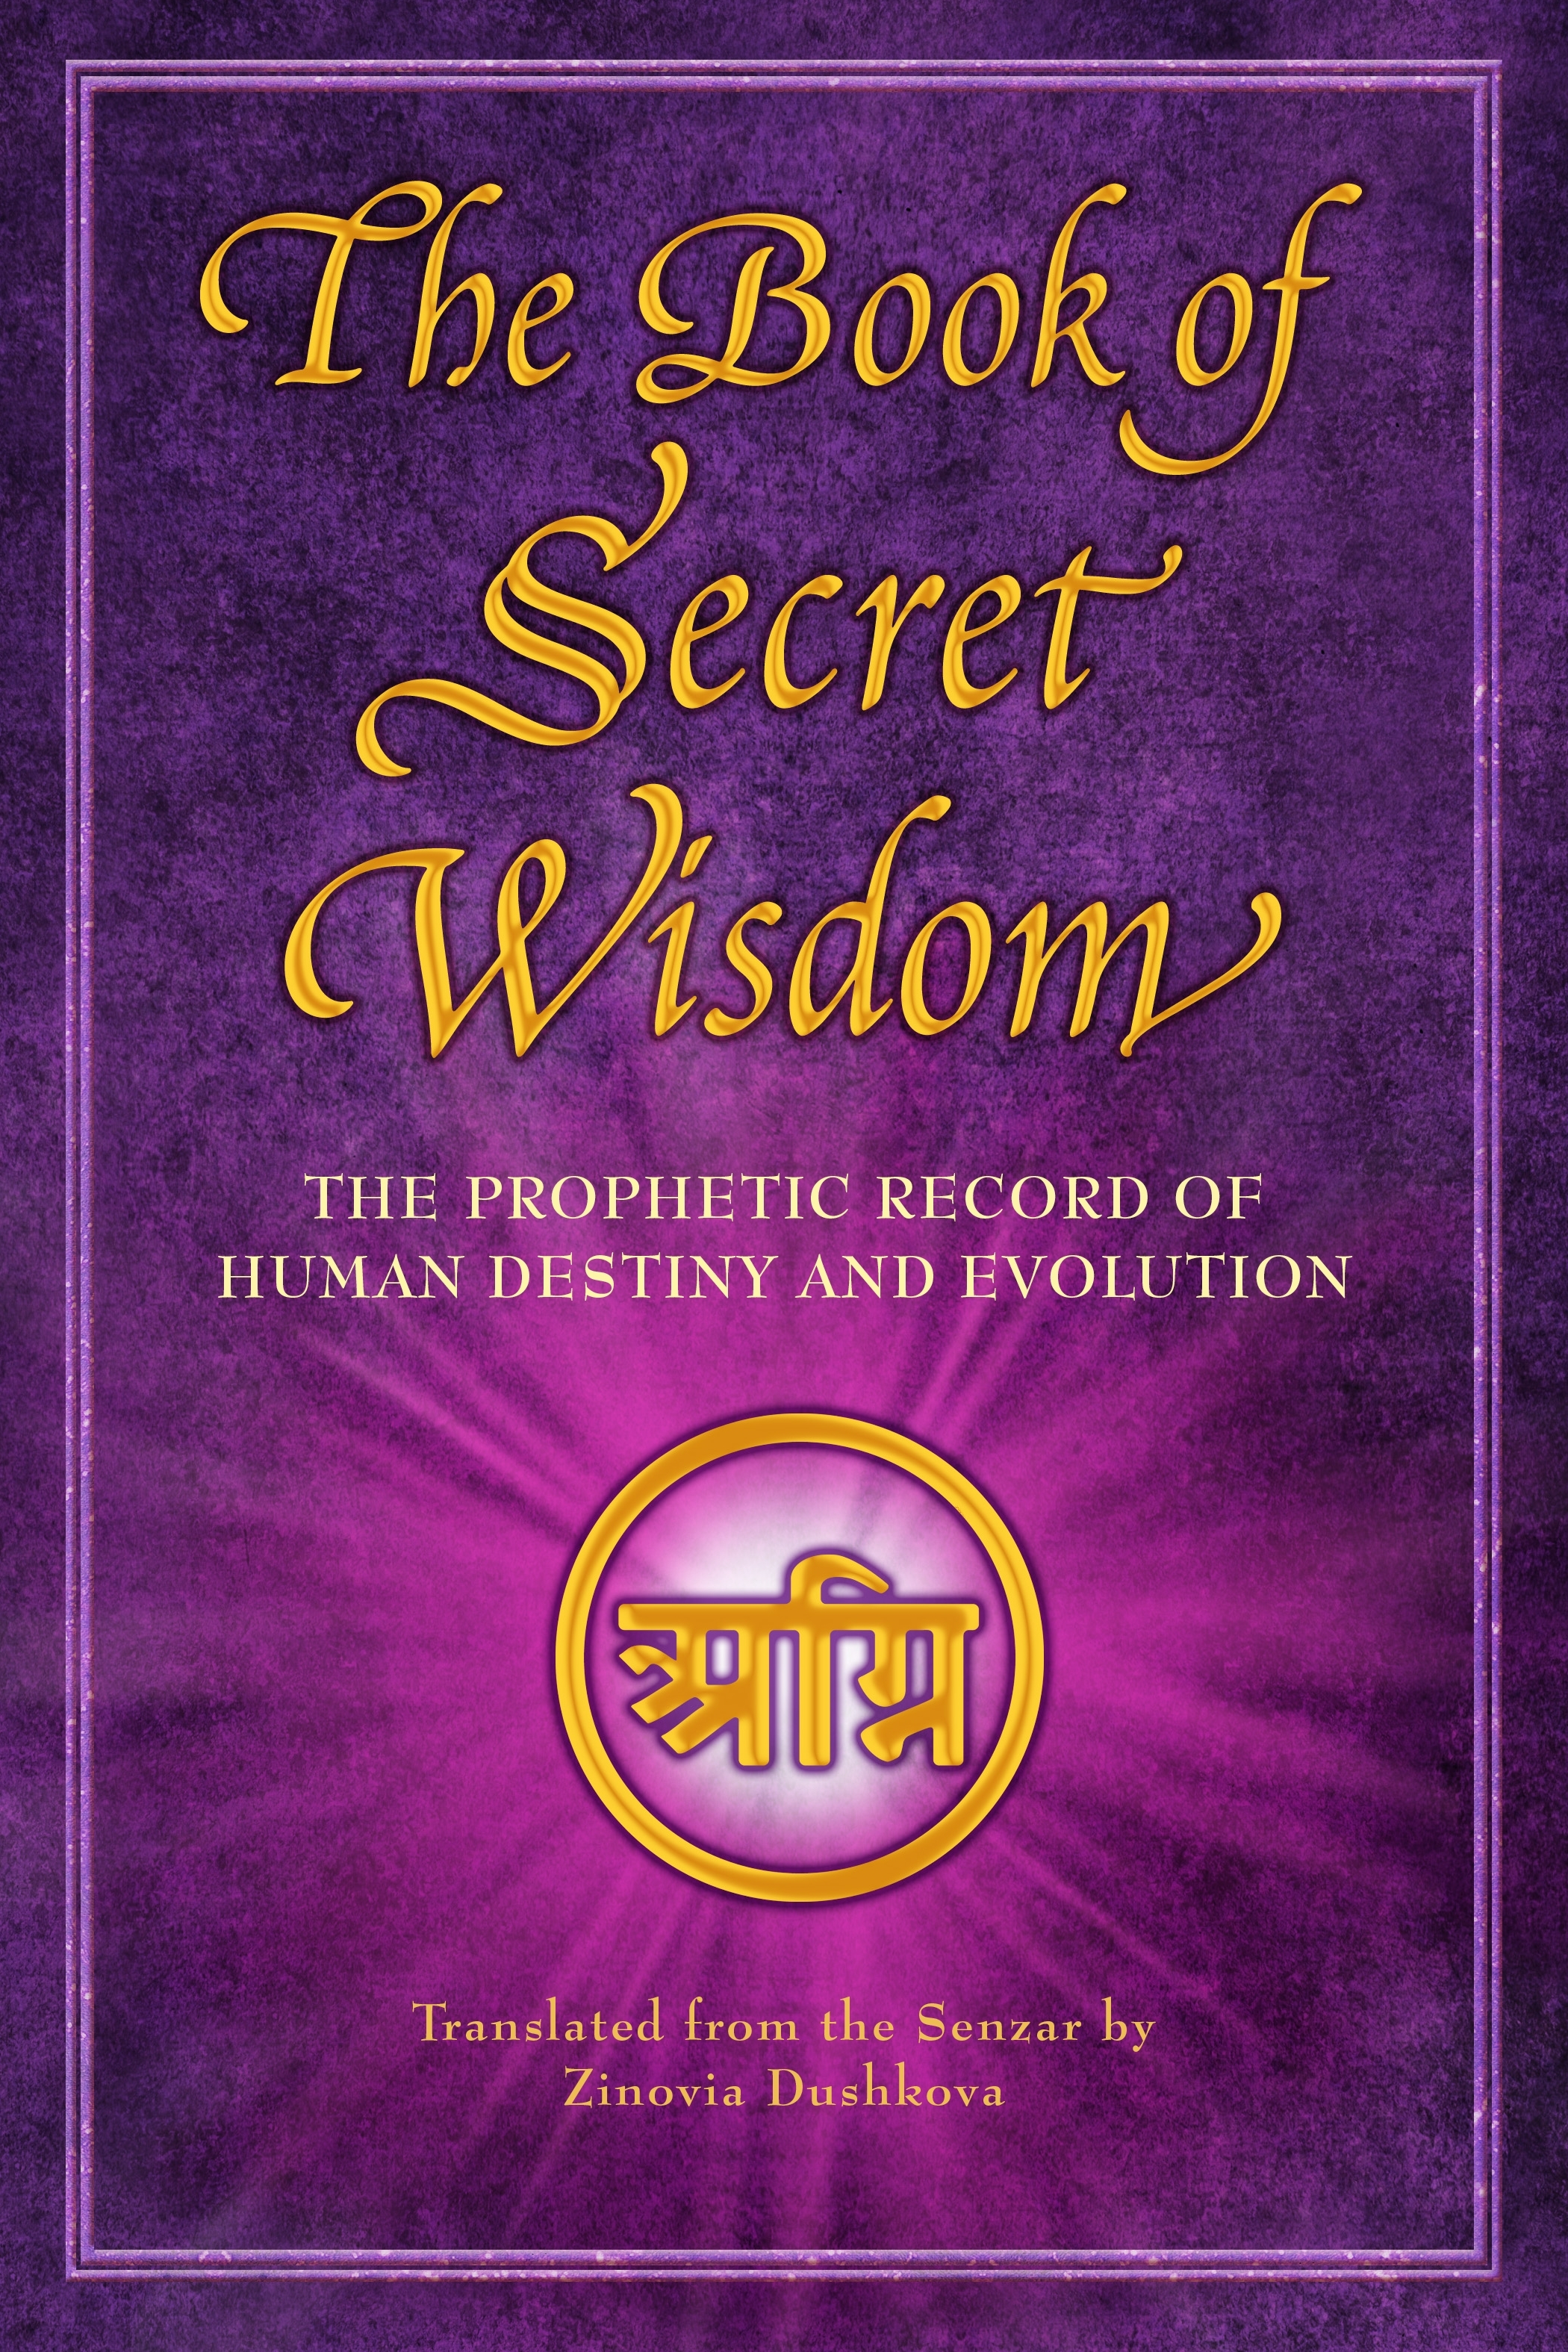 The Book of Secret Wisdom - The Prophetic Record of Human Destiny and Evolution ( PDFDrive